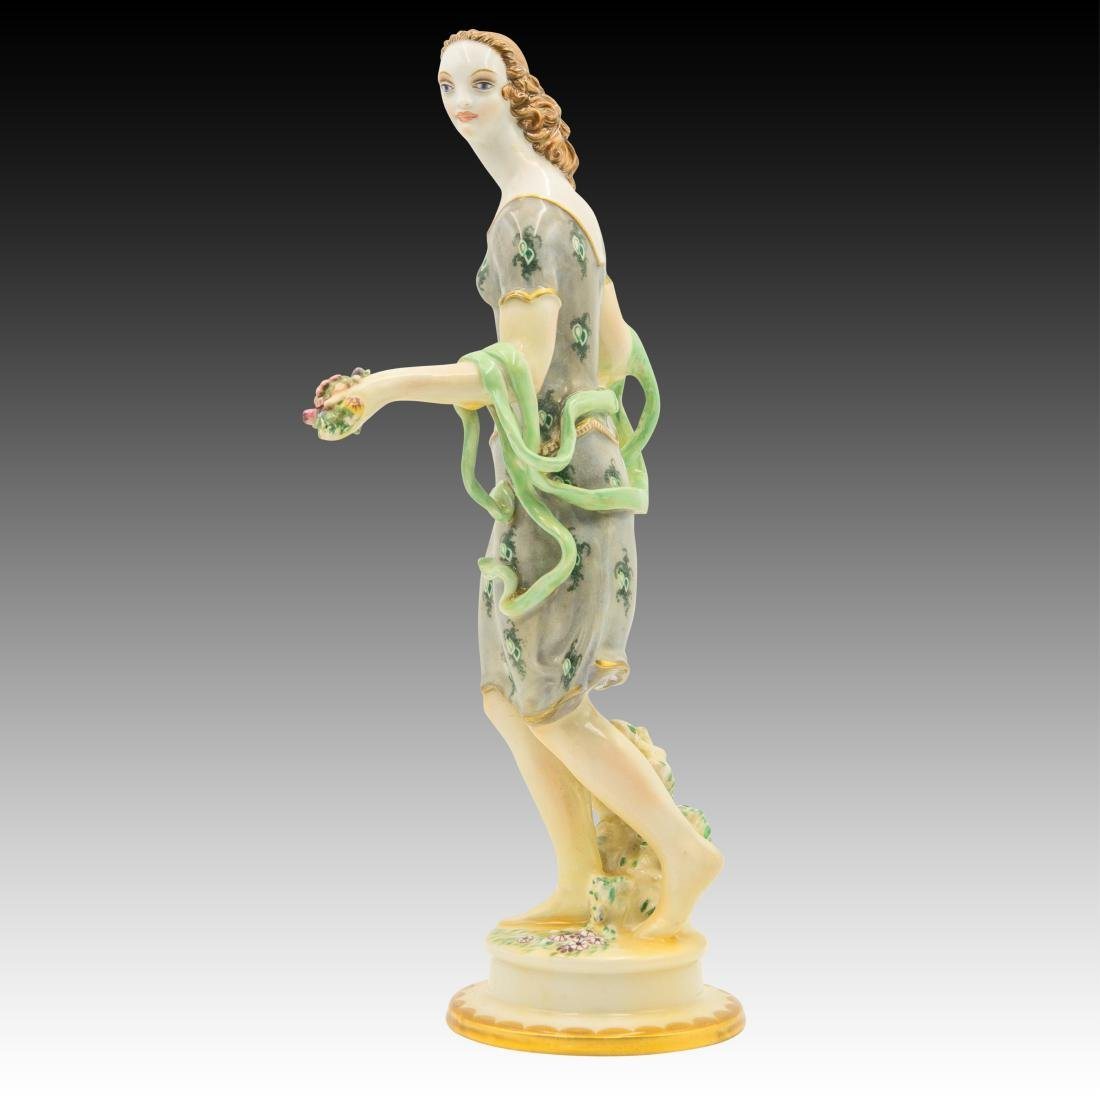 Wein Female with Flowers in her Hands Figurine - 4